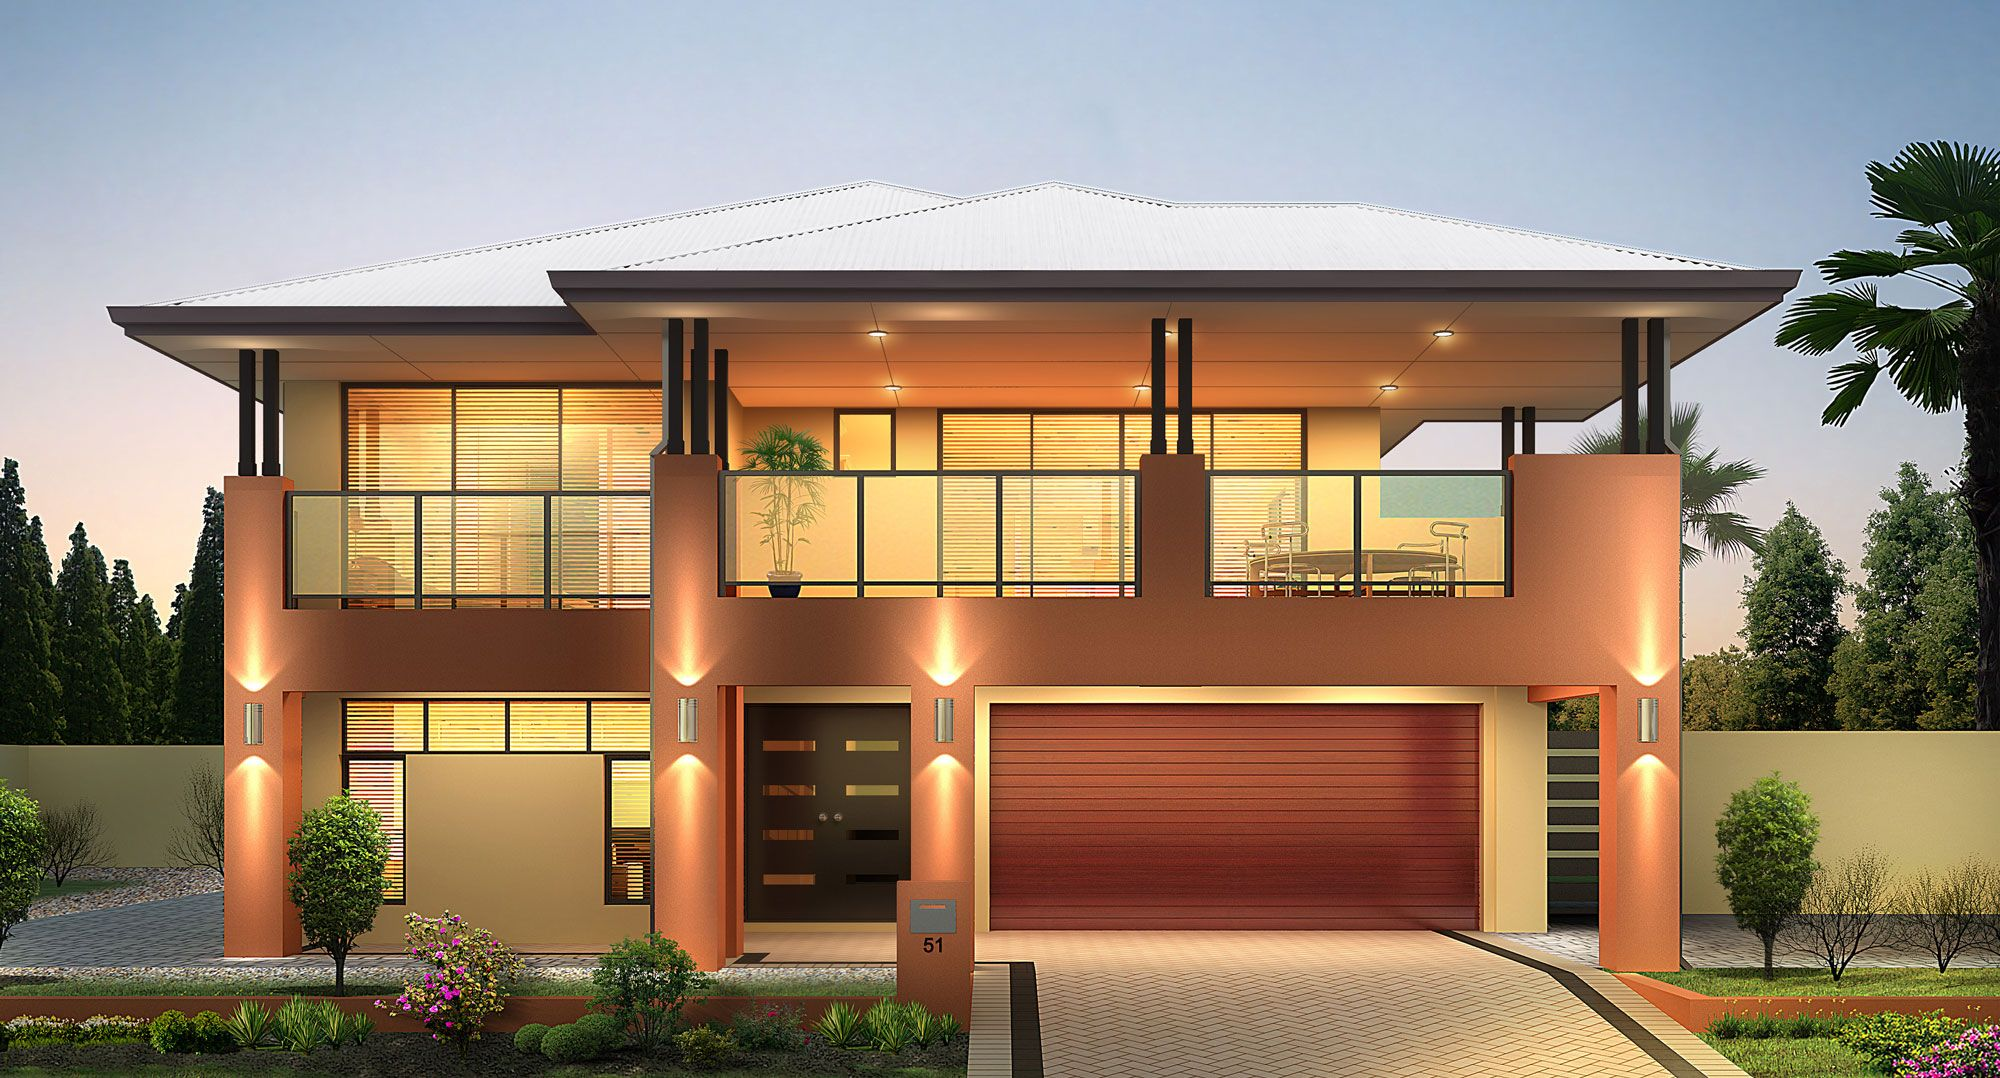 Reverse living house plans australia house plans for Reverse living house plans